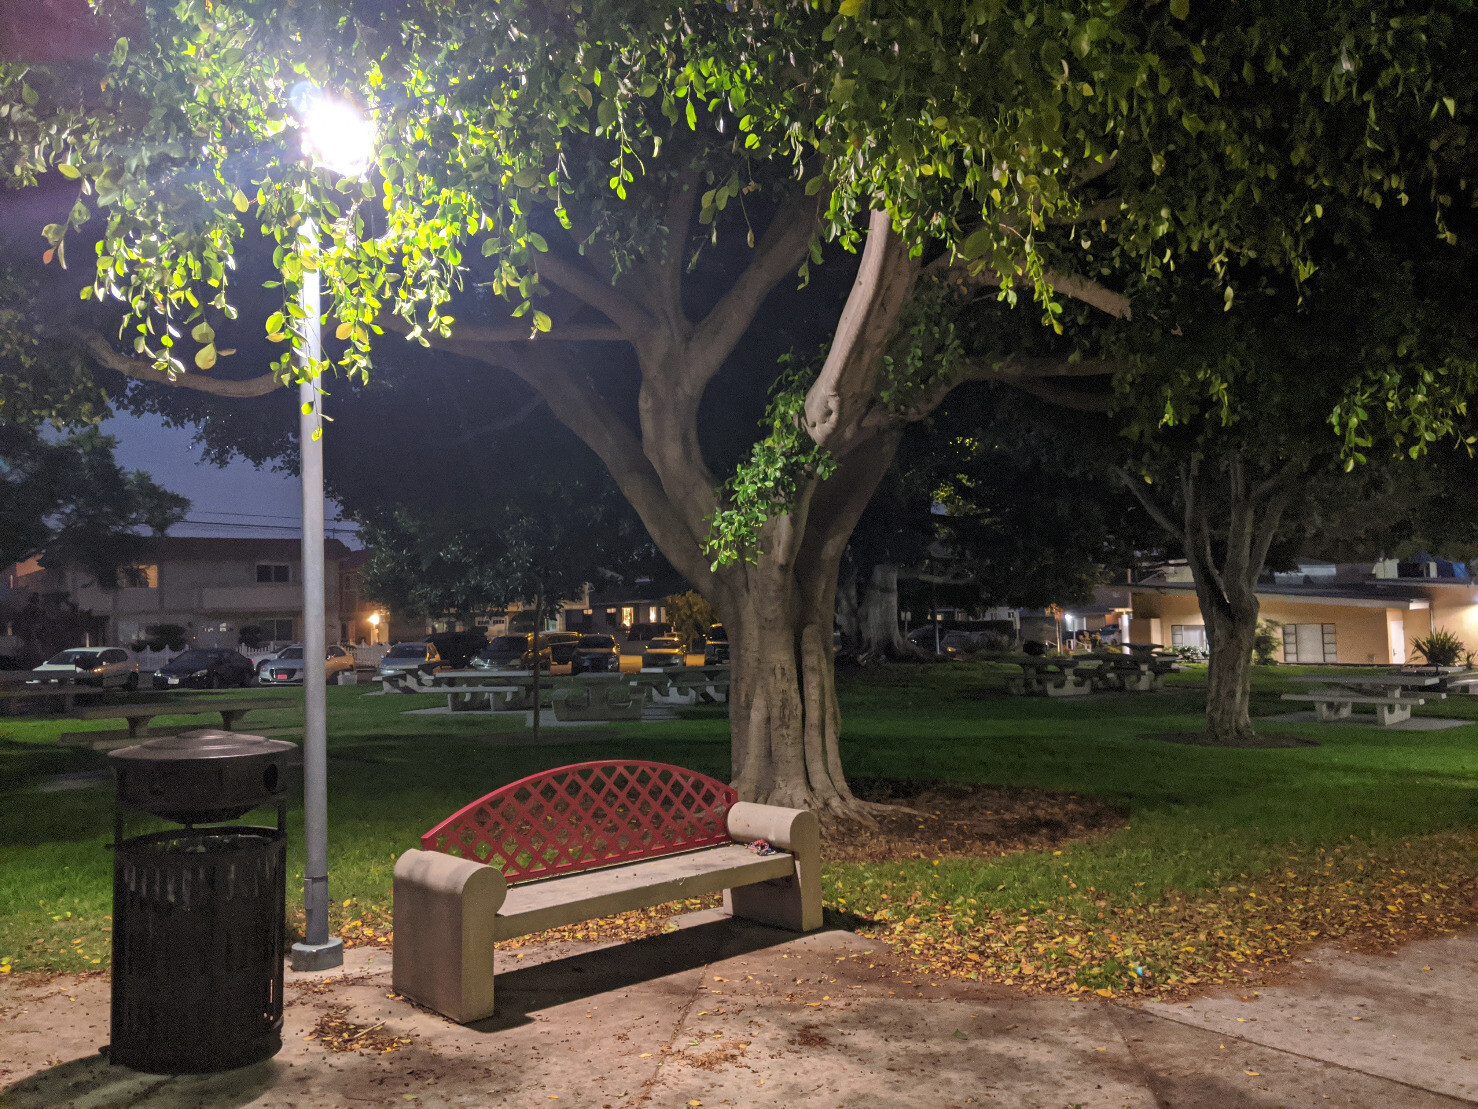 A park bench and light pole in front of a tree and a lawn. Tables and other trees scattered around. No one is there. But there are cars parked in front of the houses across the street.